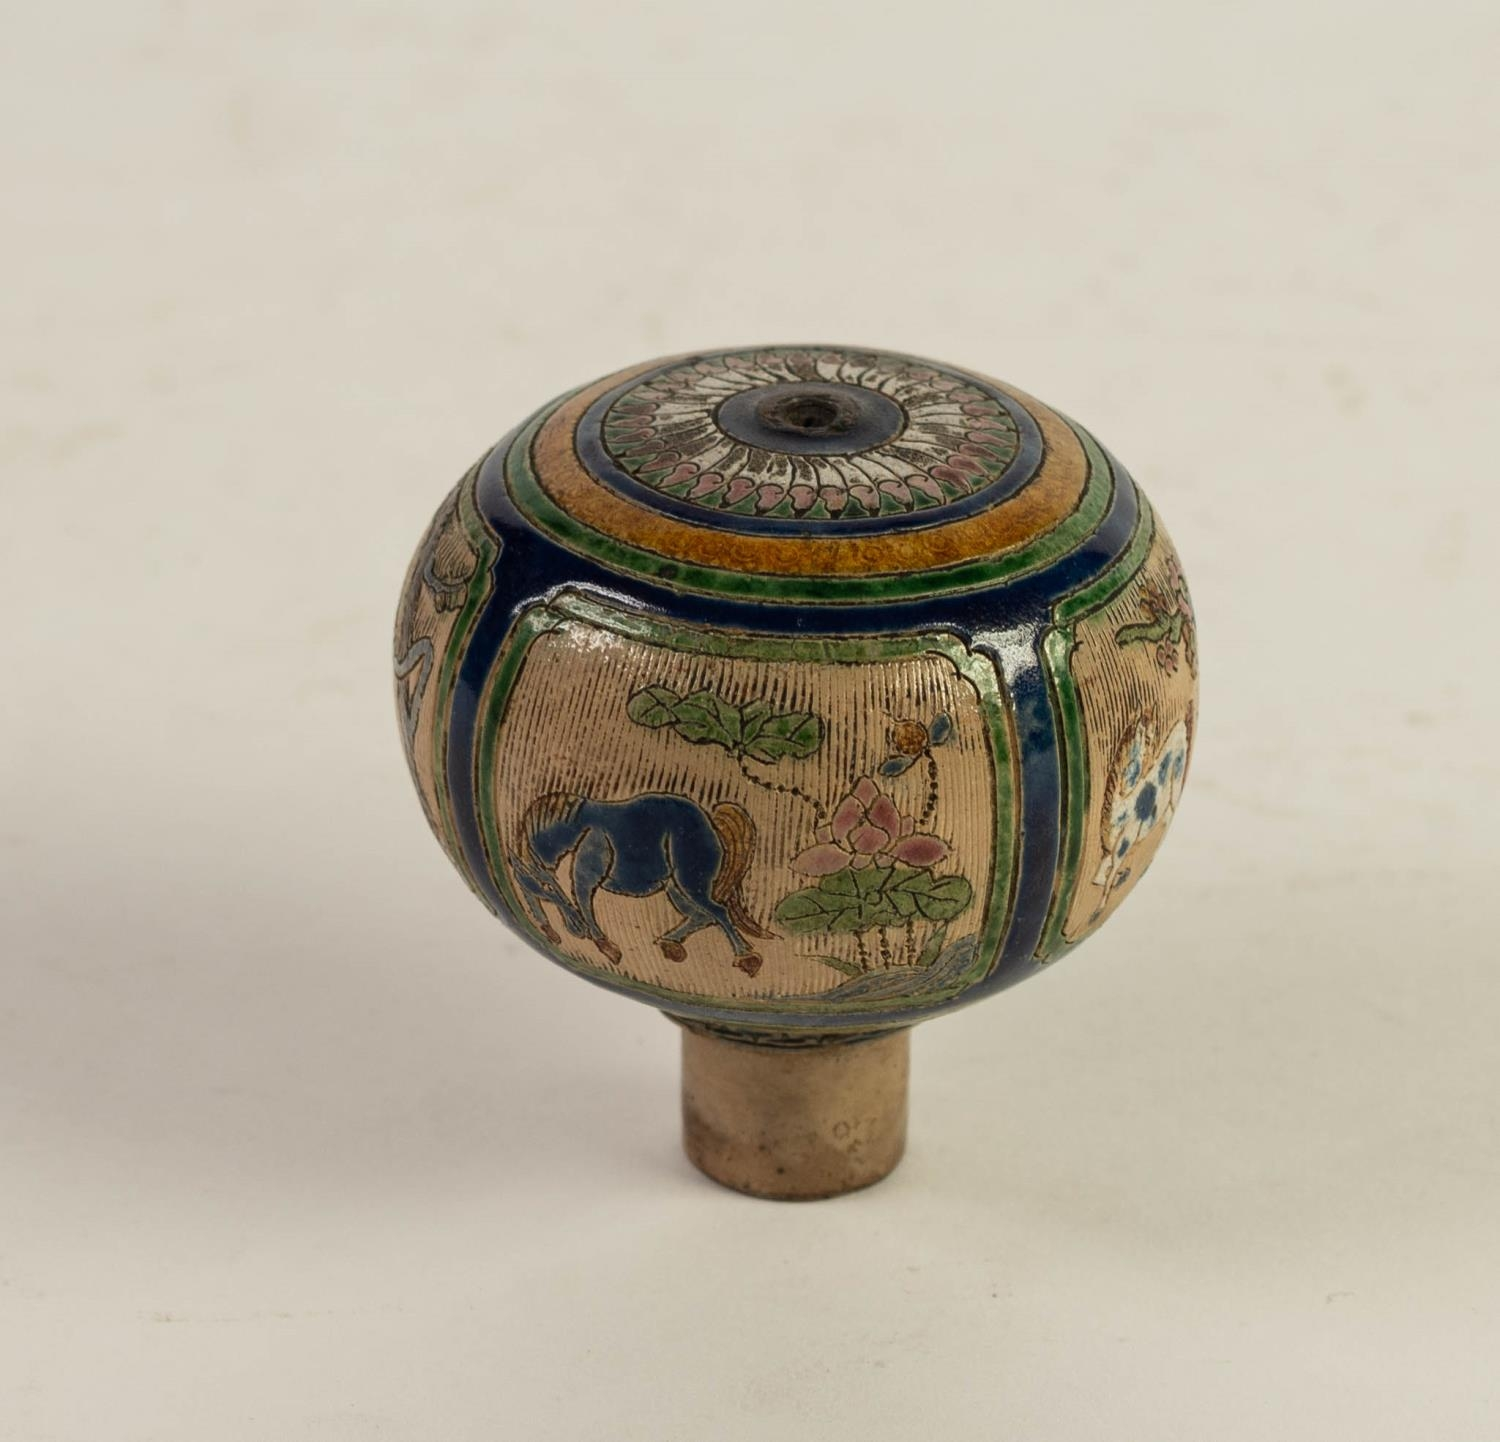 CHINESE QING DYNASTY PORCELANEOUS ORBICULAR KNOB OR FINIAL, incised and enamelled with four panels - Image 5 of 6